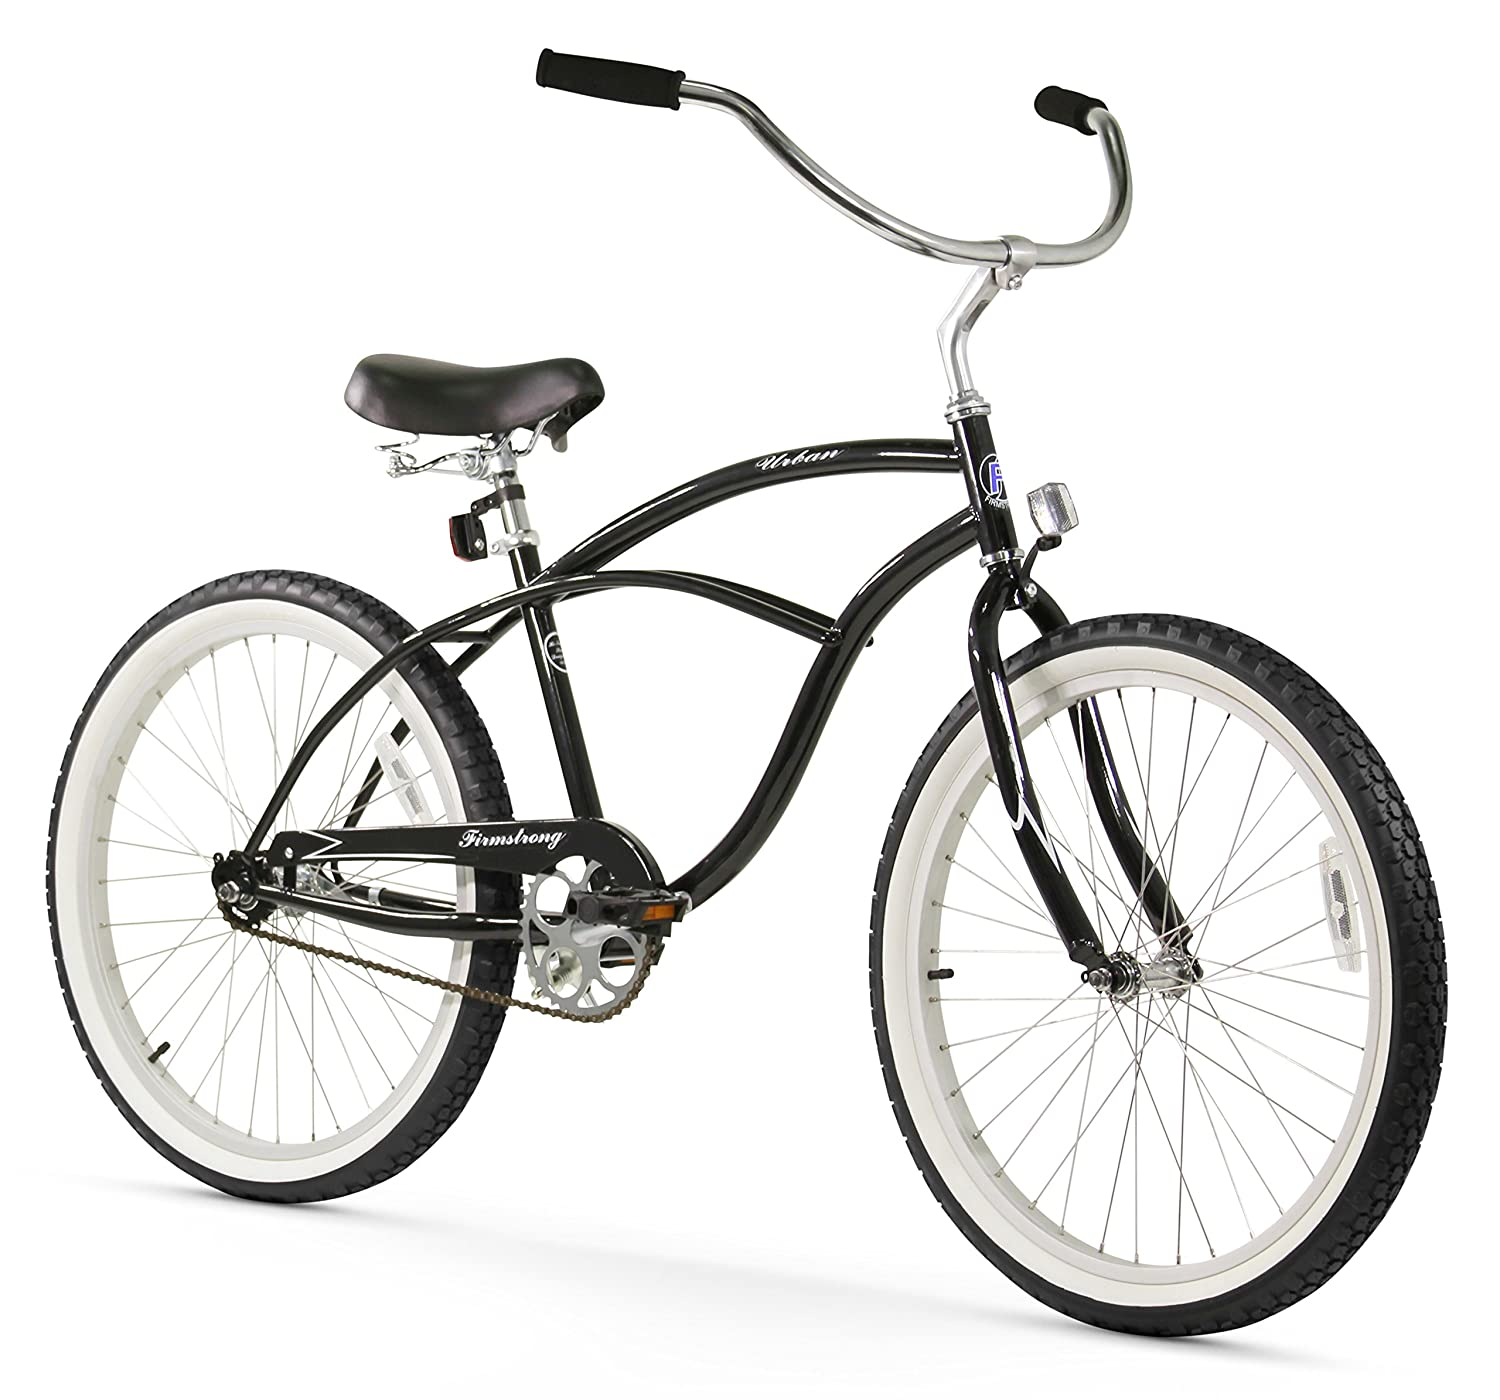 amazoncom firmstrong urban man single speed beach cruiser bicycle 24 inch black cruiser bicycles sports u0026 outdoors